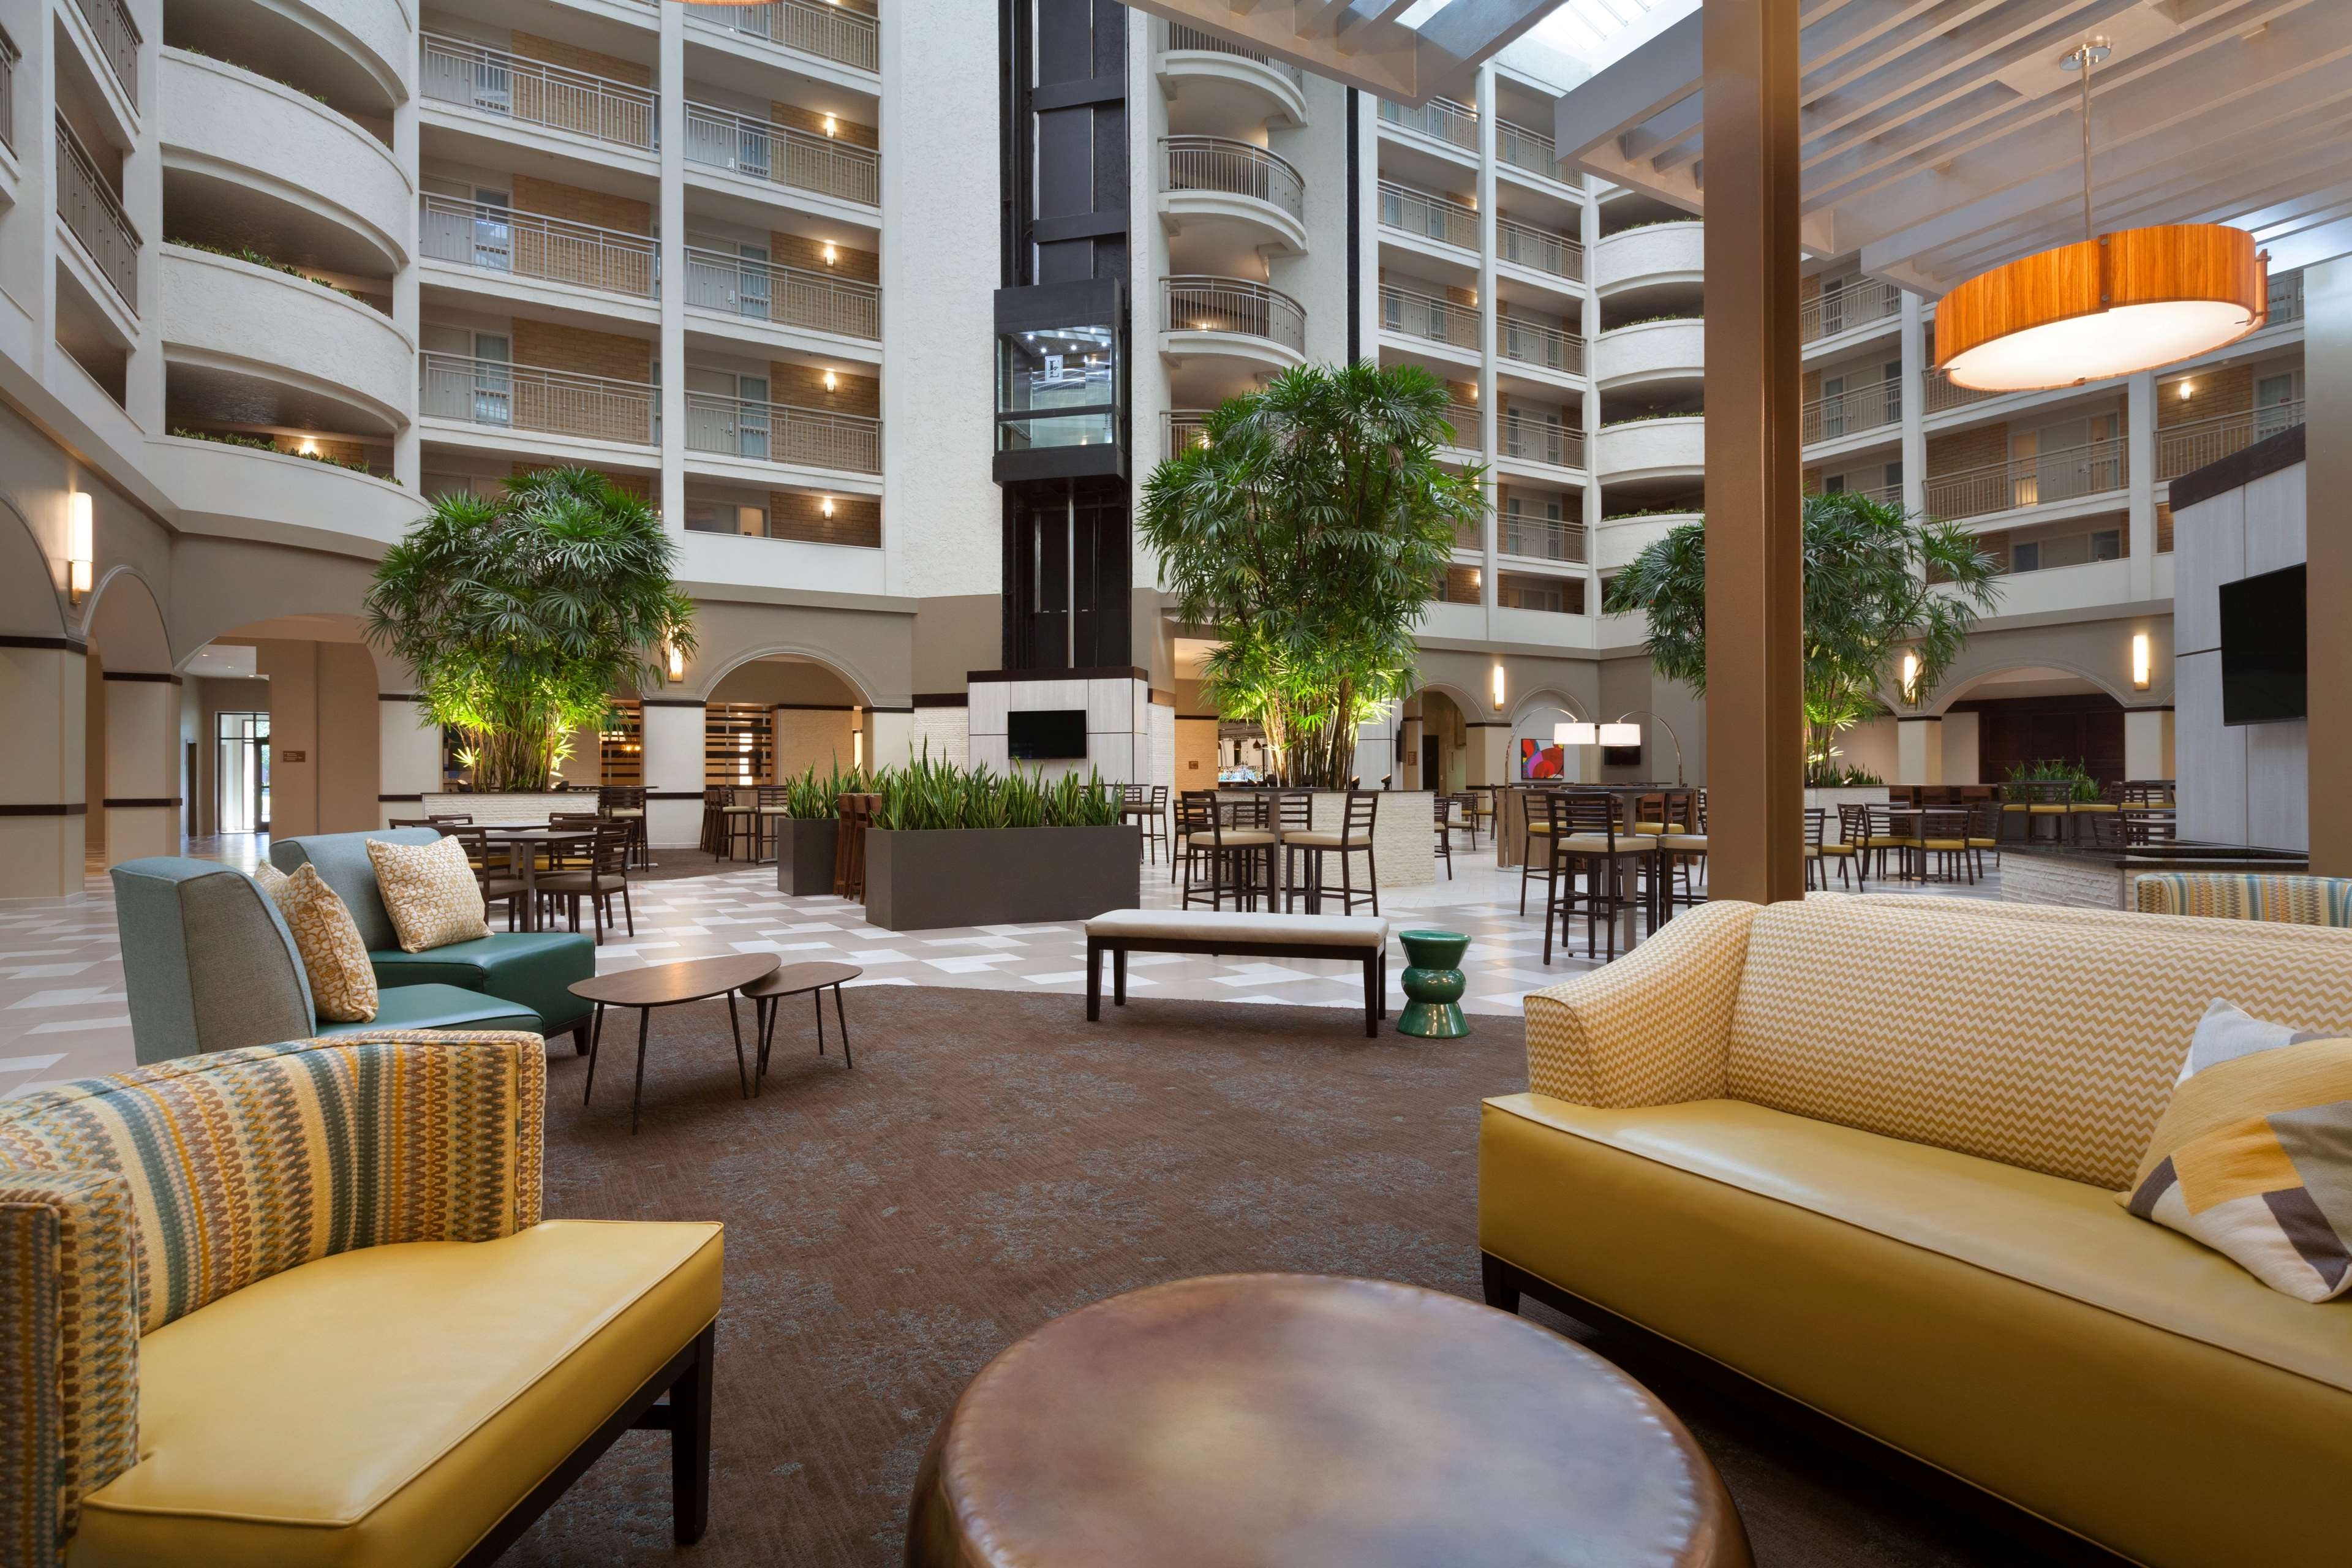 Embassy Suites by Hilton Jacksonville Baymeadows image 5